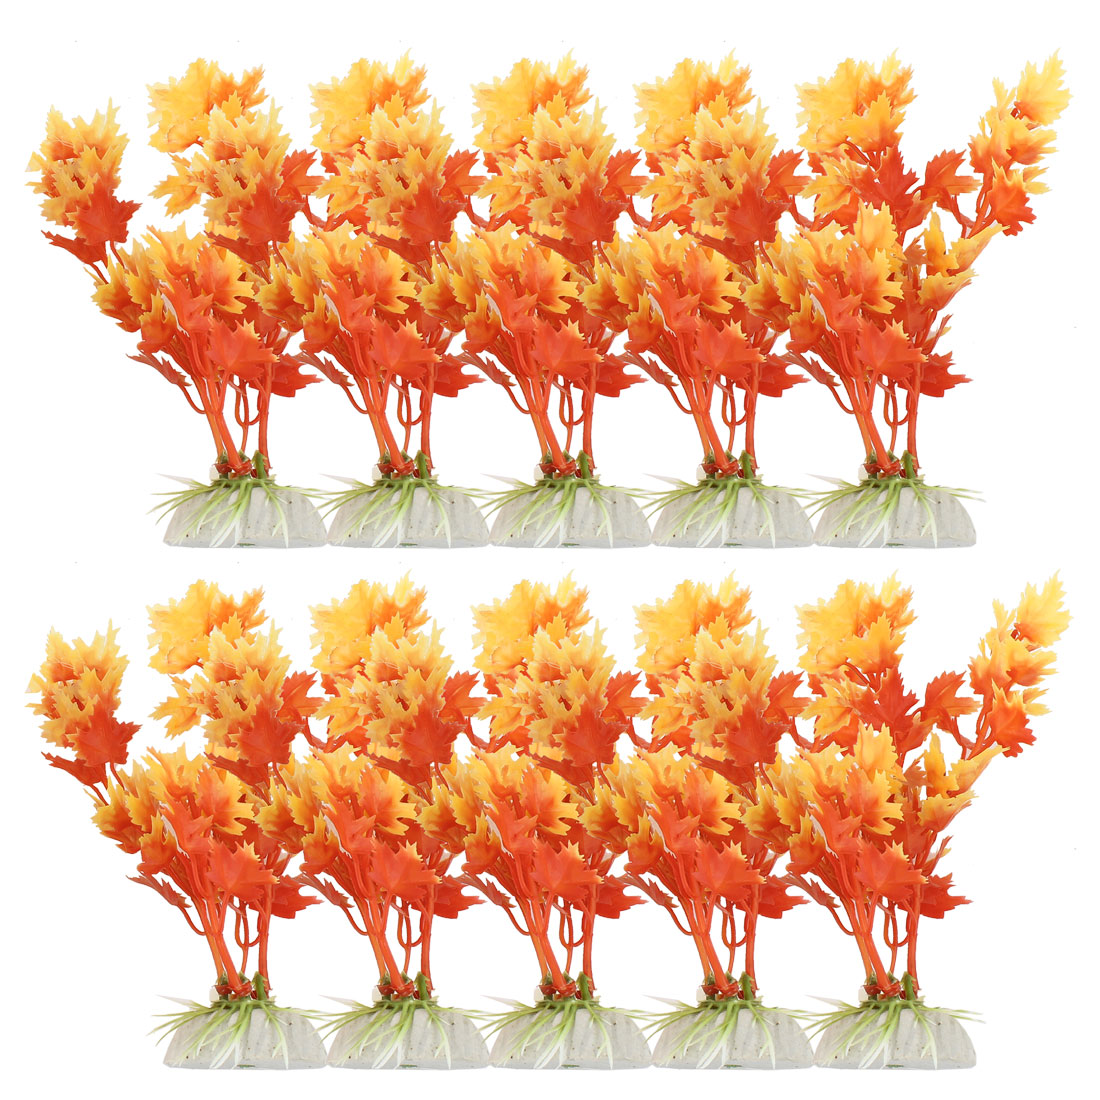 "10 Pcs 5.7"" High Ceramic Base Orangered Plastic Plants Grass for Aquarium Tank"